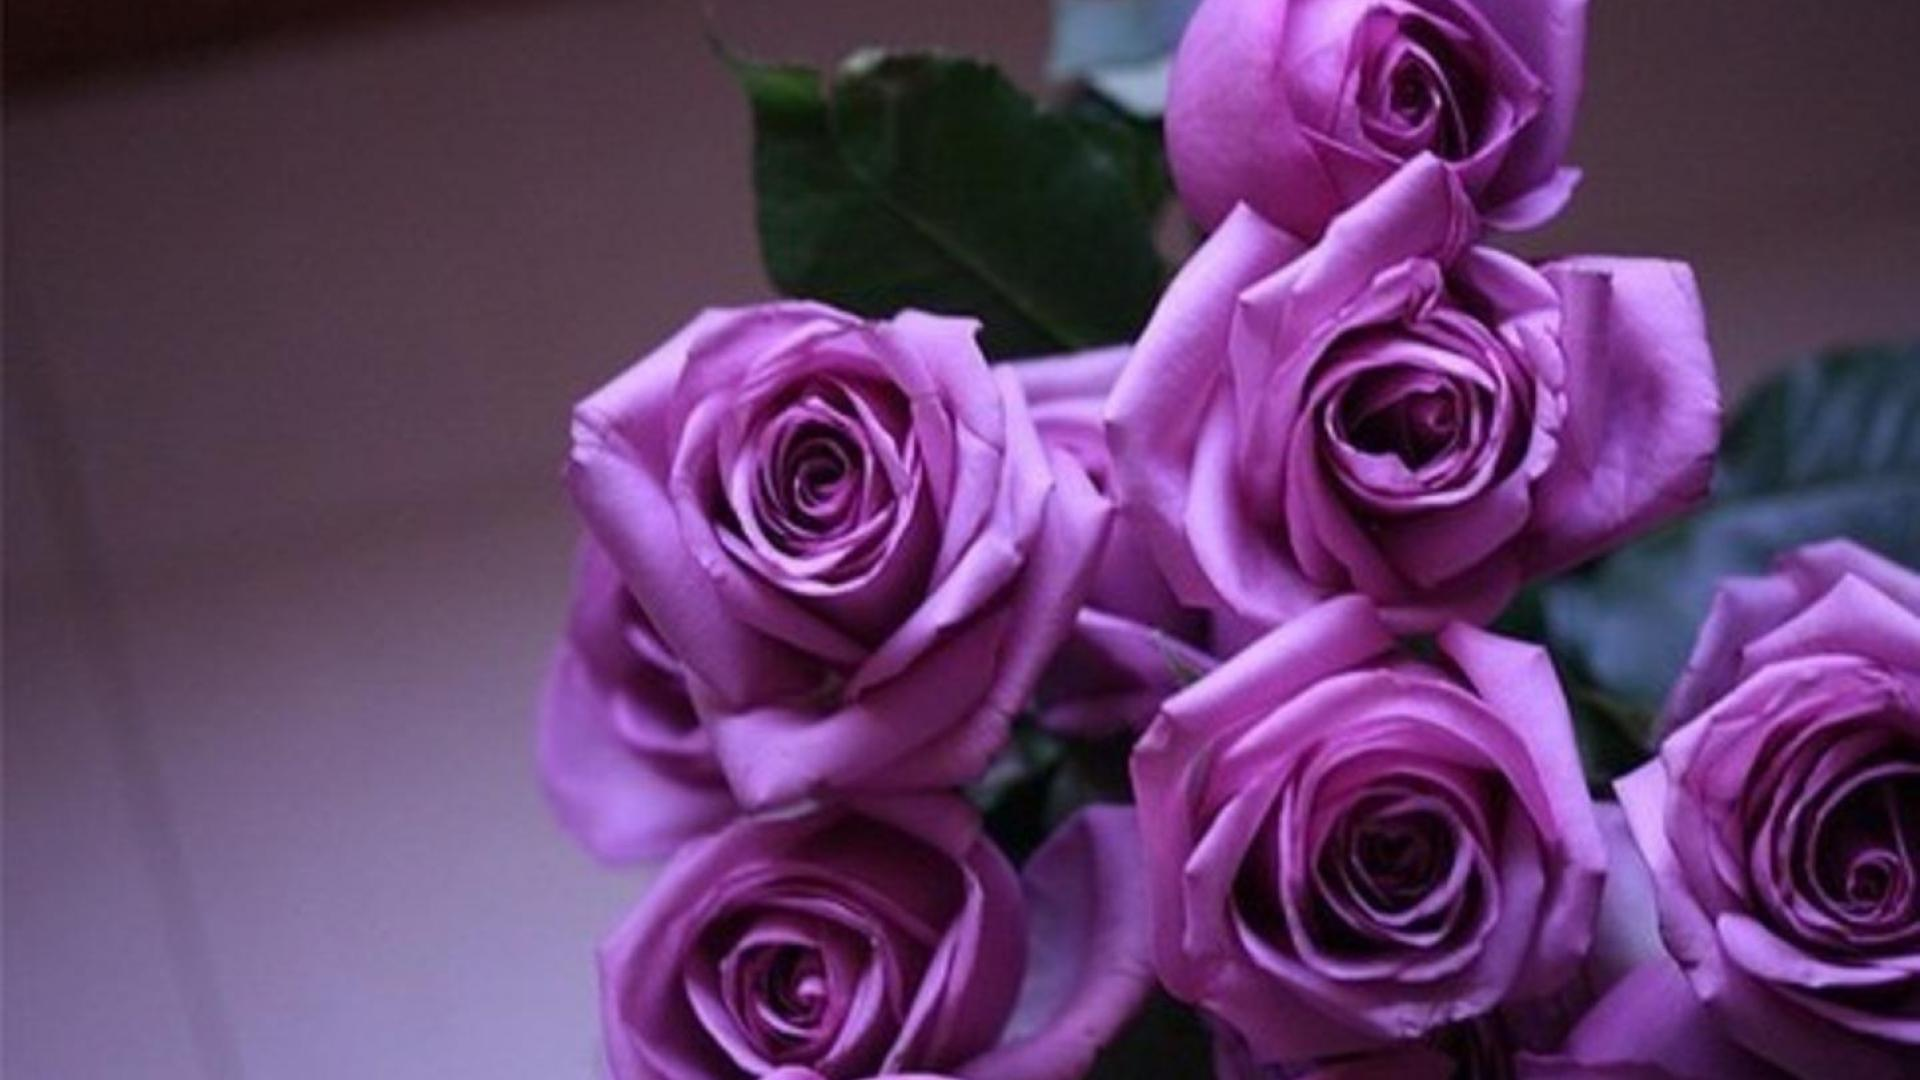 purple roses wallpaper high definition high quality